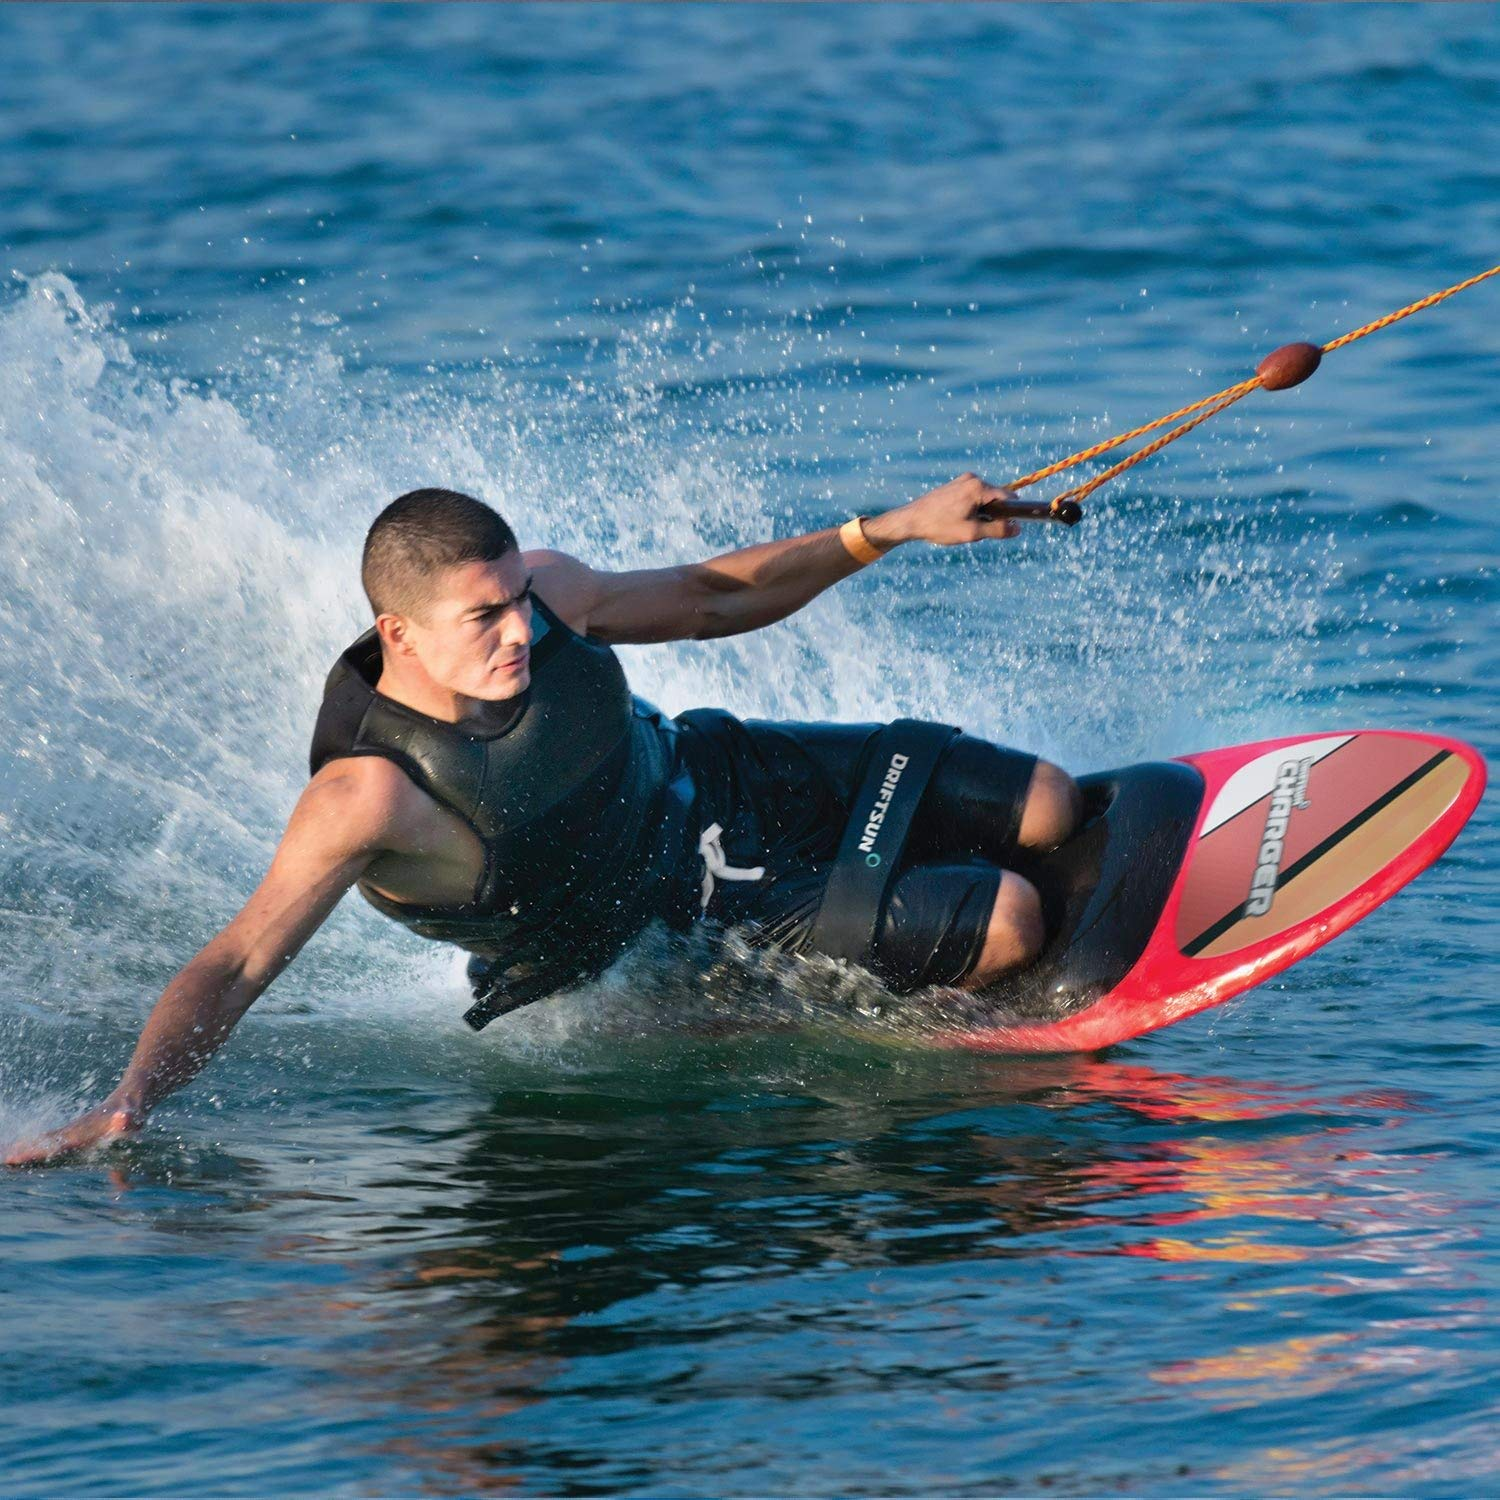 Knee-Board Water-Sports Driftsun Charger Kneeboard with Hook for Kids and Adults 54-Inches x 20-Inches Renewed Includes Boating Strap and Hook